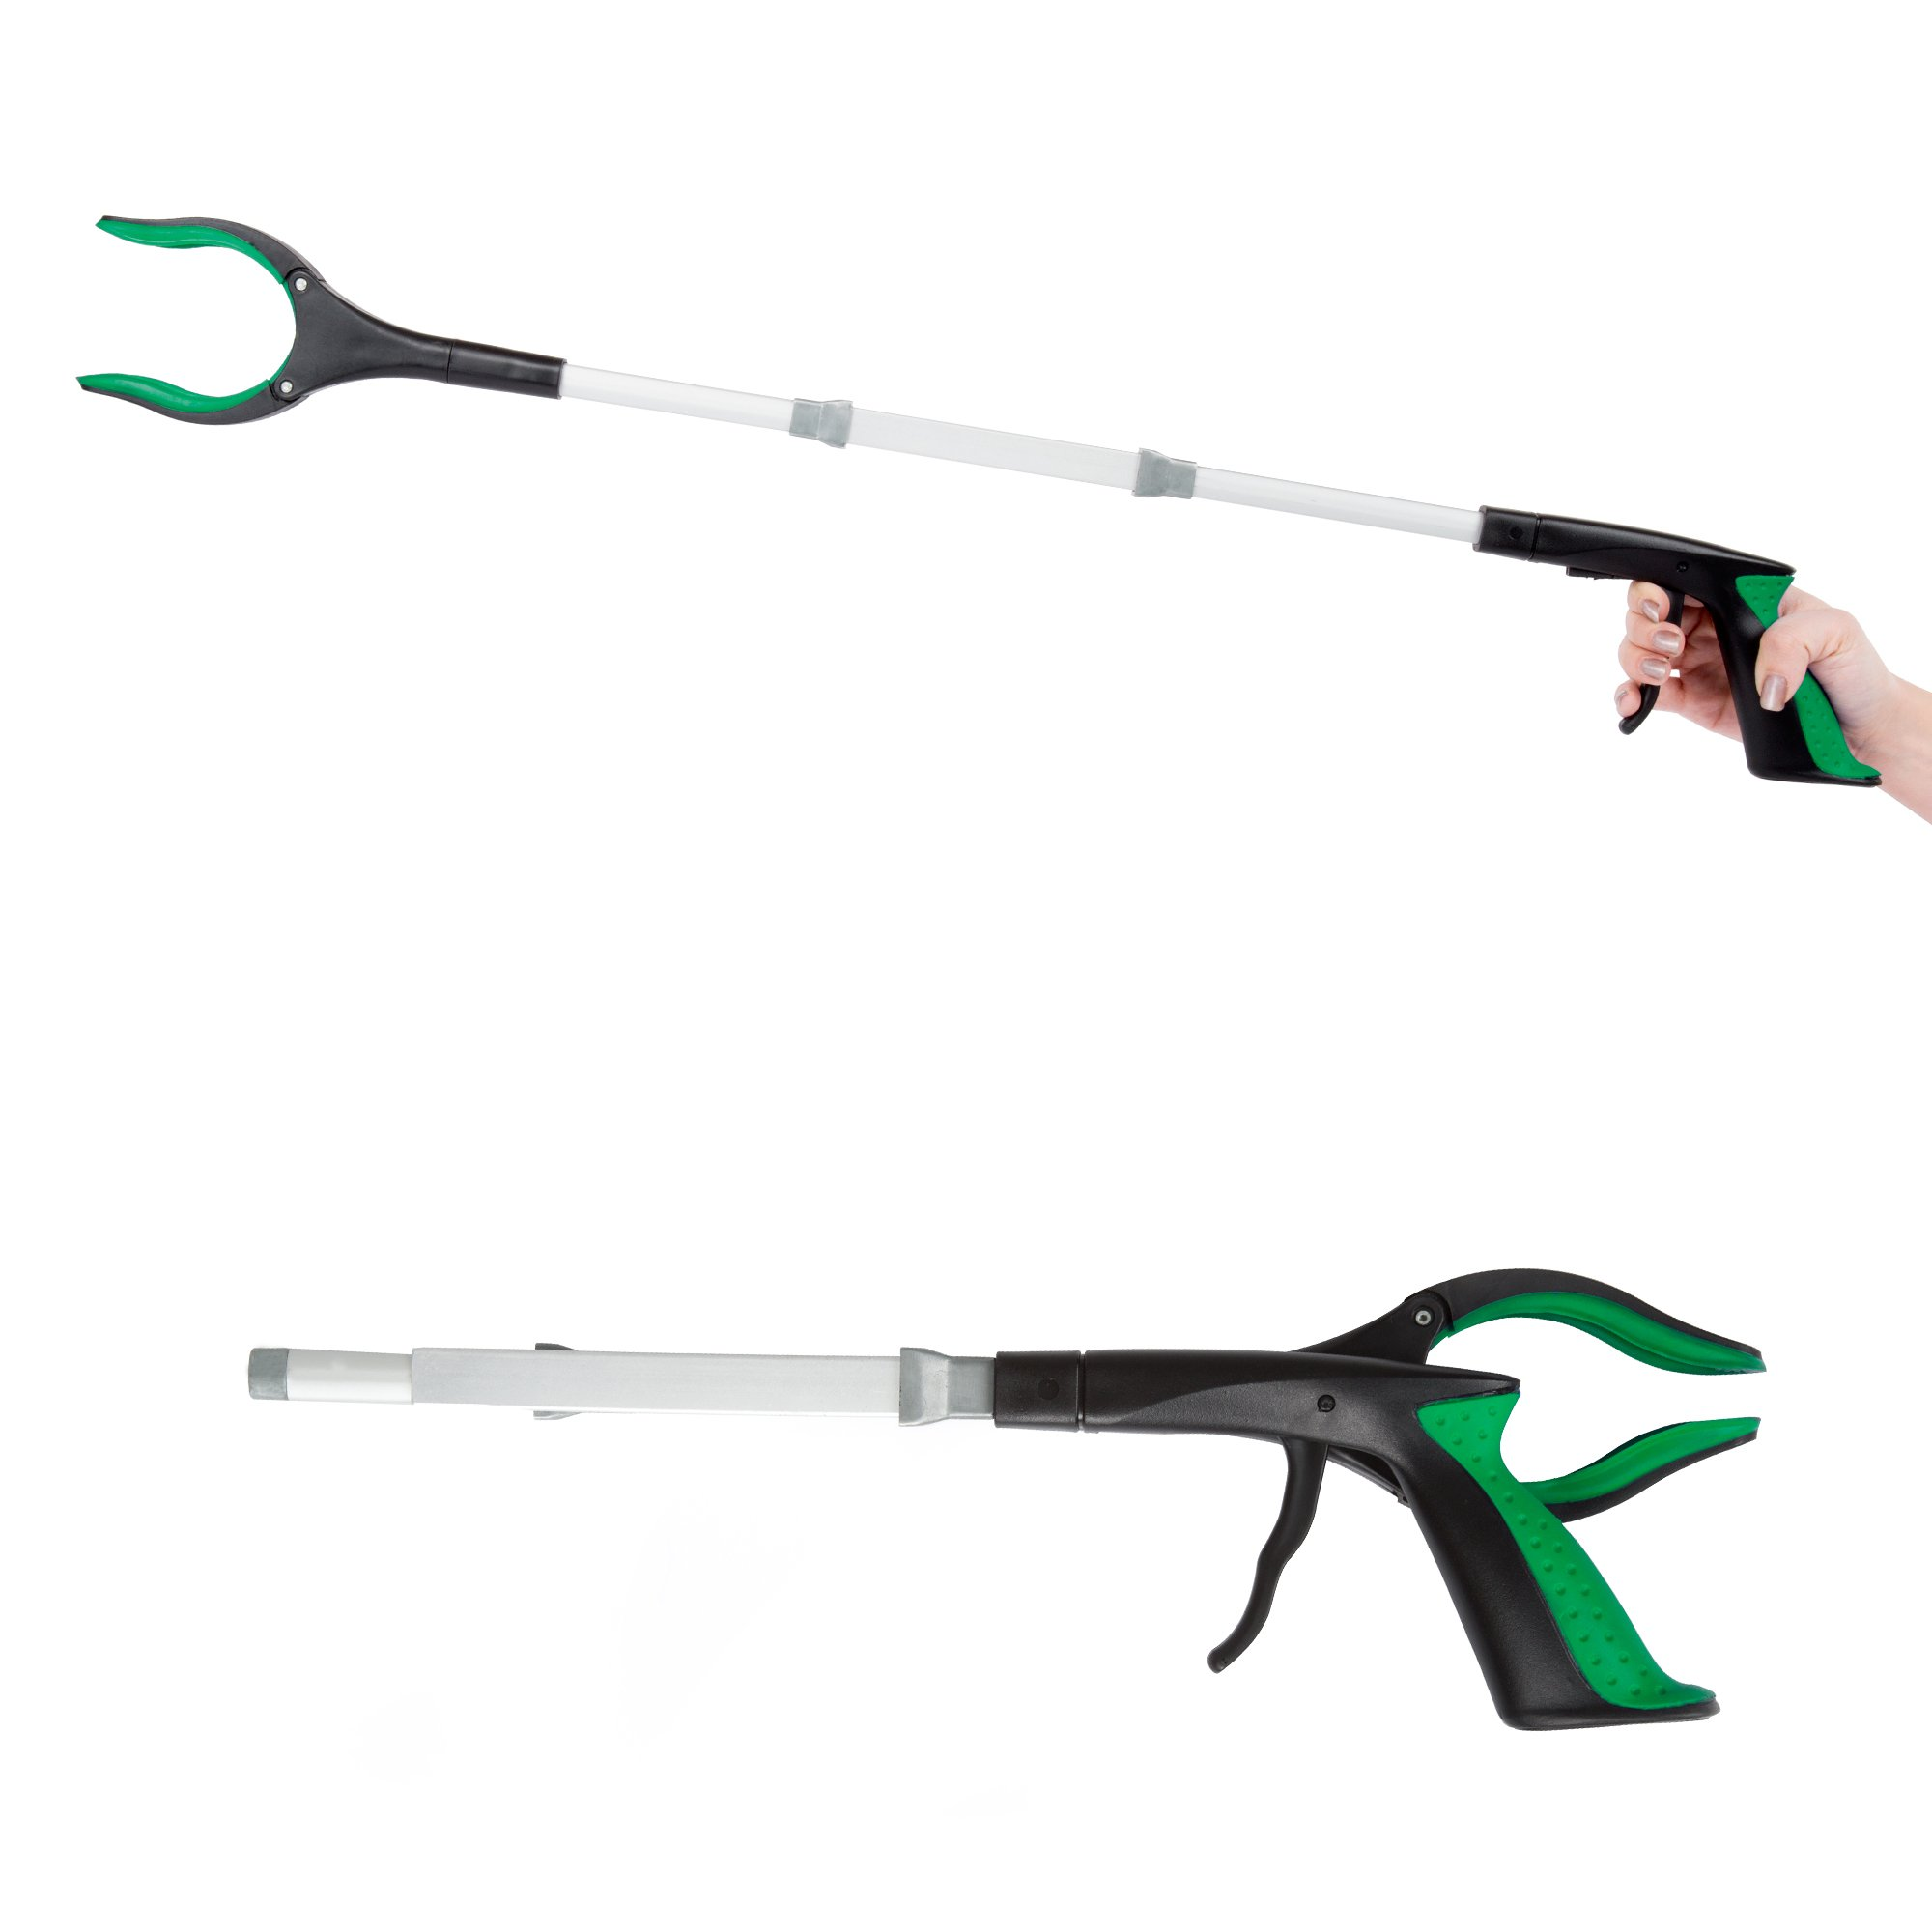 Grabber Reacher with Rubber Grip Handle – 32 Inch Multipurpose Foldable Reaching Assist Claw Arm Extender Tool with Heavy Duty Grip by Bluestone